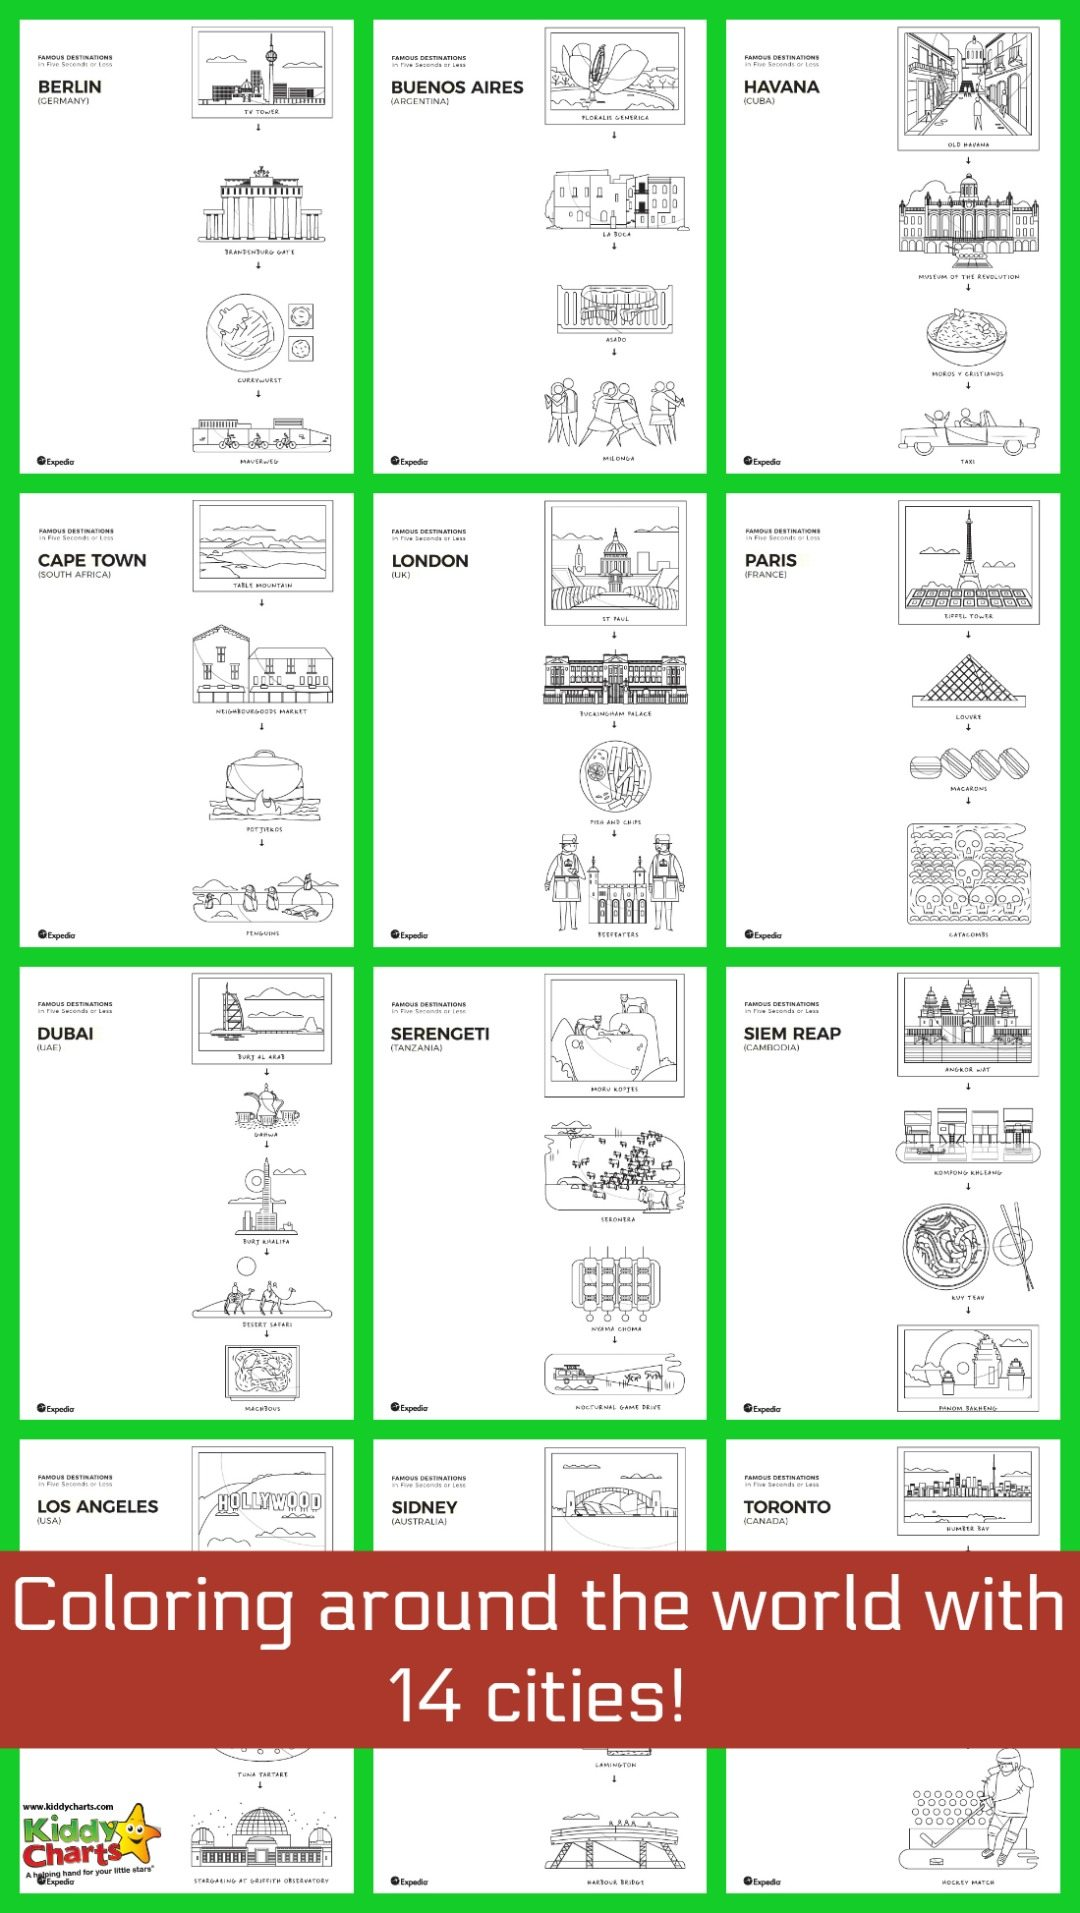 World Cities coloring pages for the kids to explore, and learn about some of the most cities around!